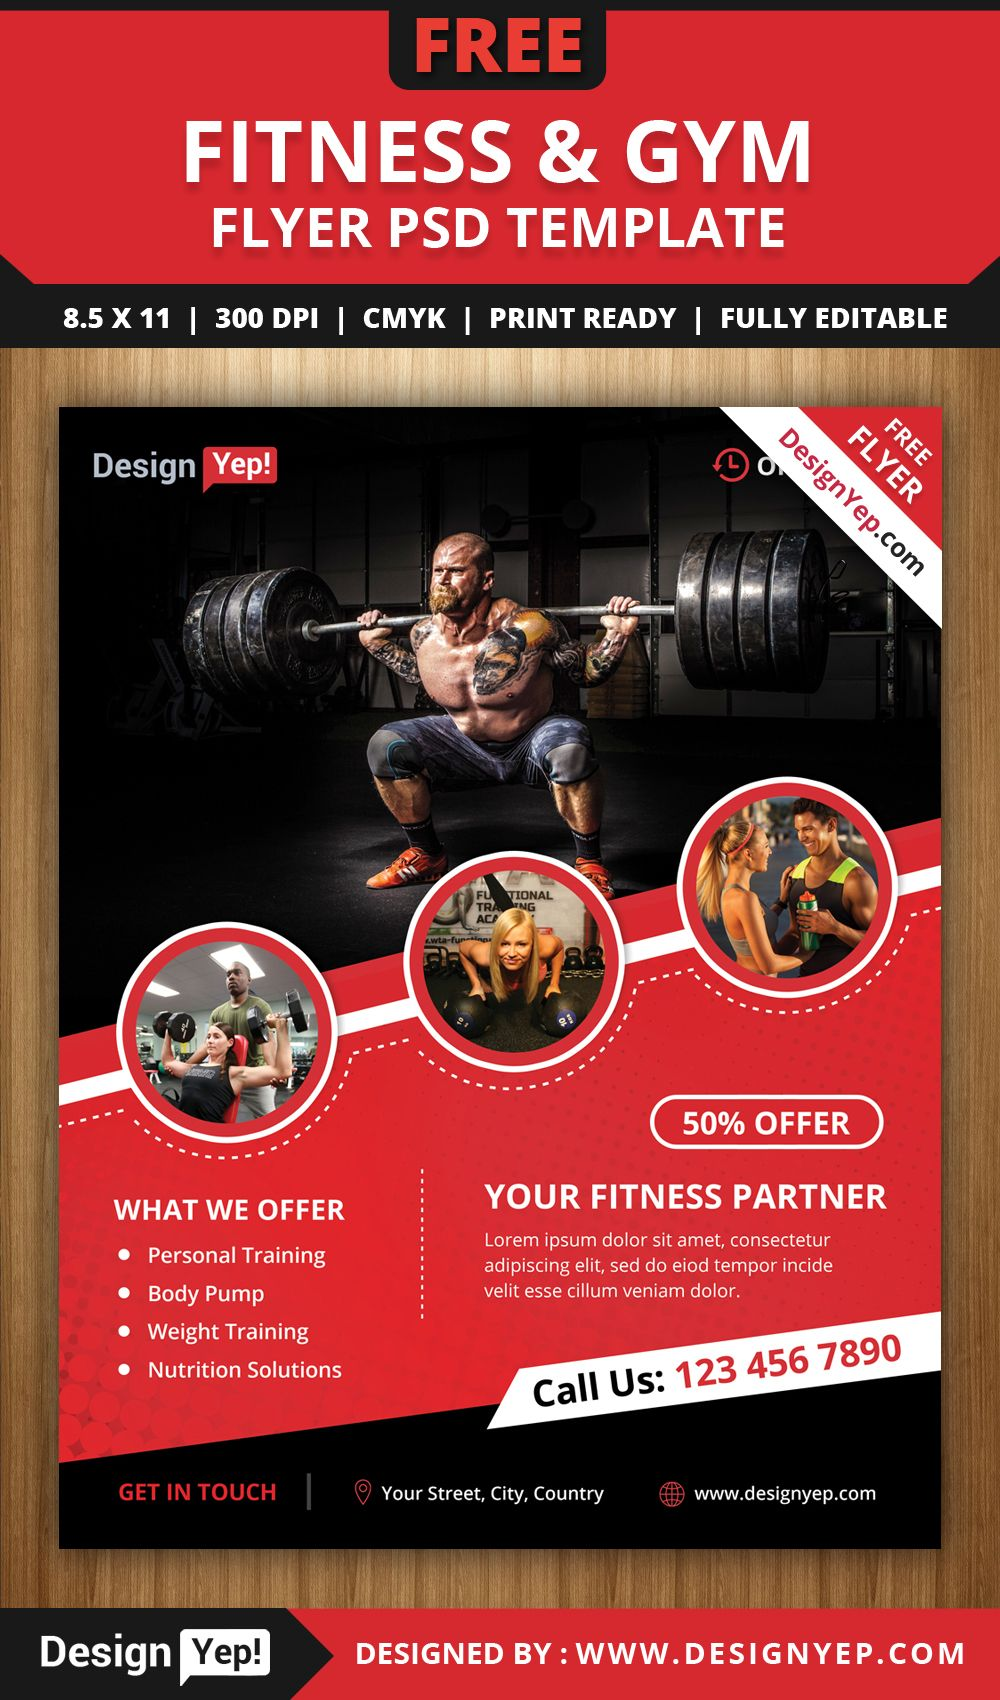 Free Fitness  Gym Flyer Psd Template  Free Flyers